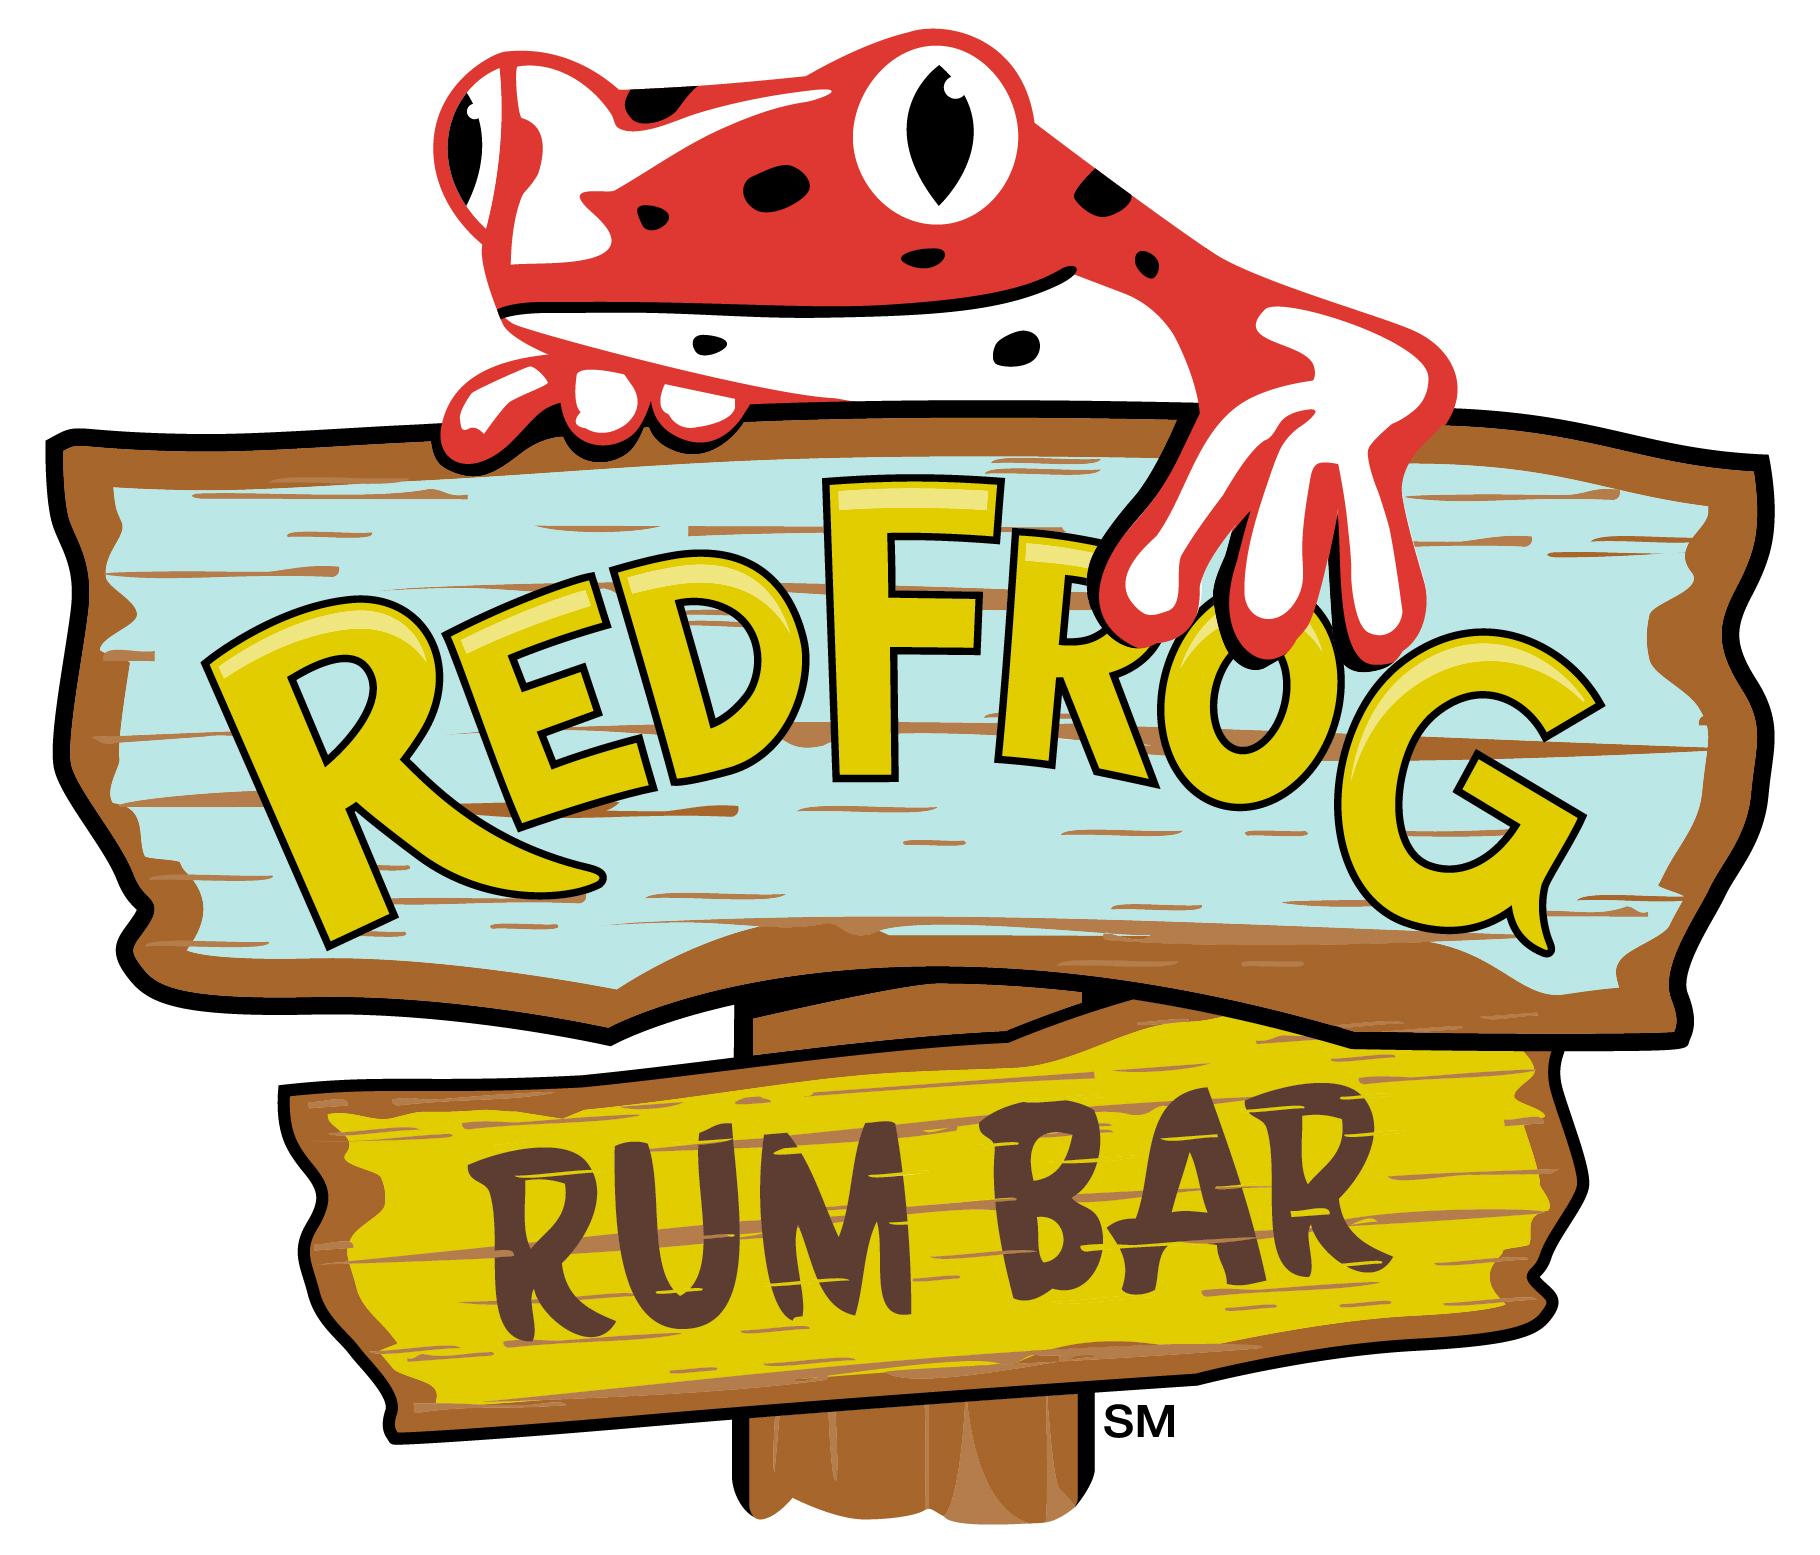 RedFrog Rum Bar and BlueIguana Tequila Bar to Provide Ultimate